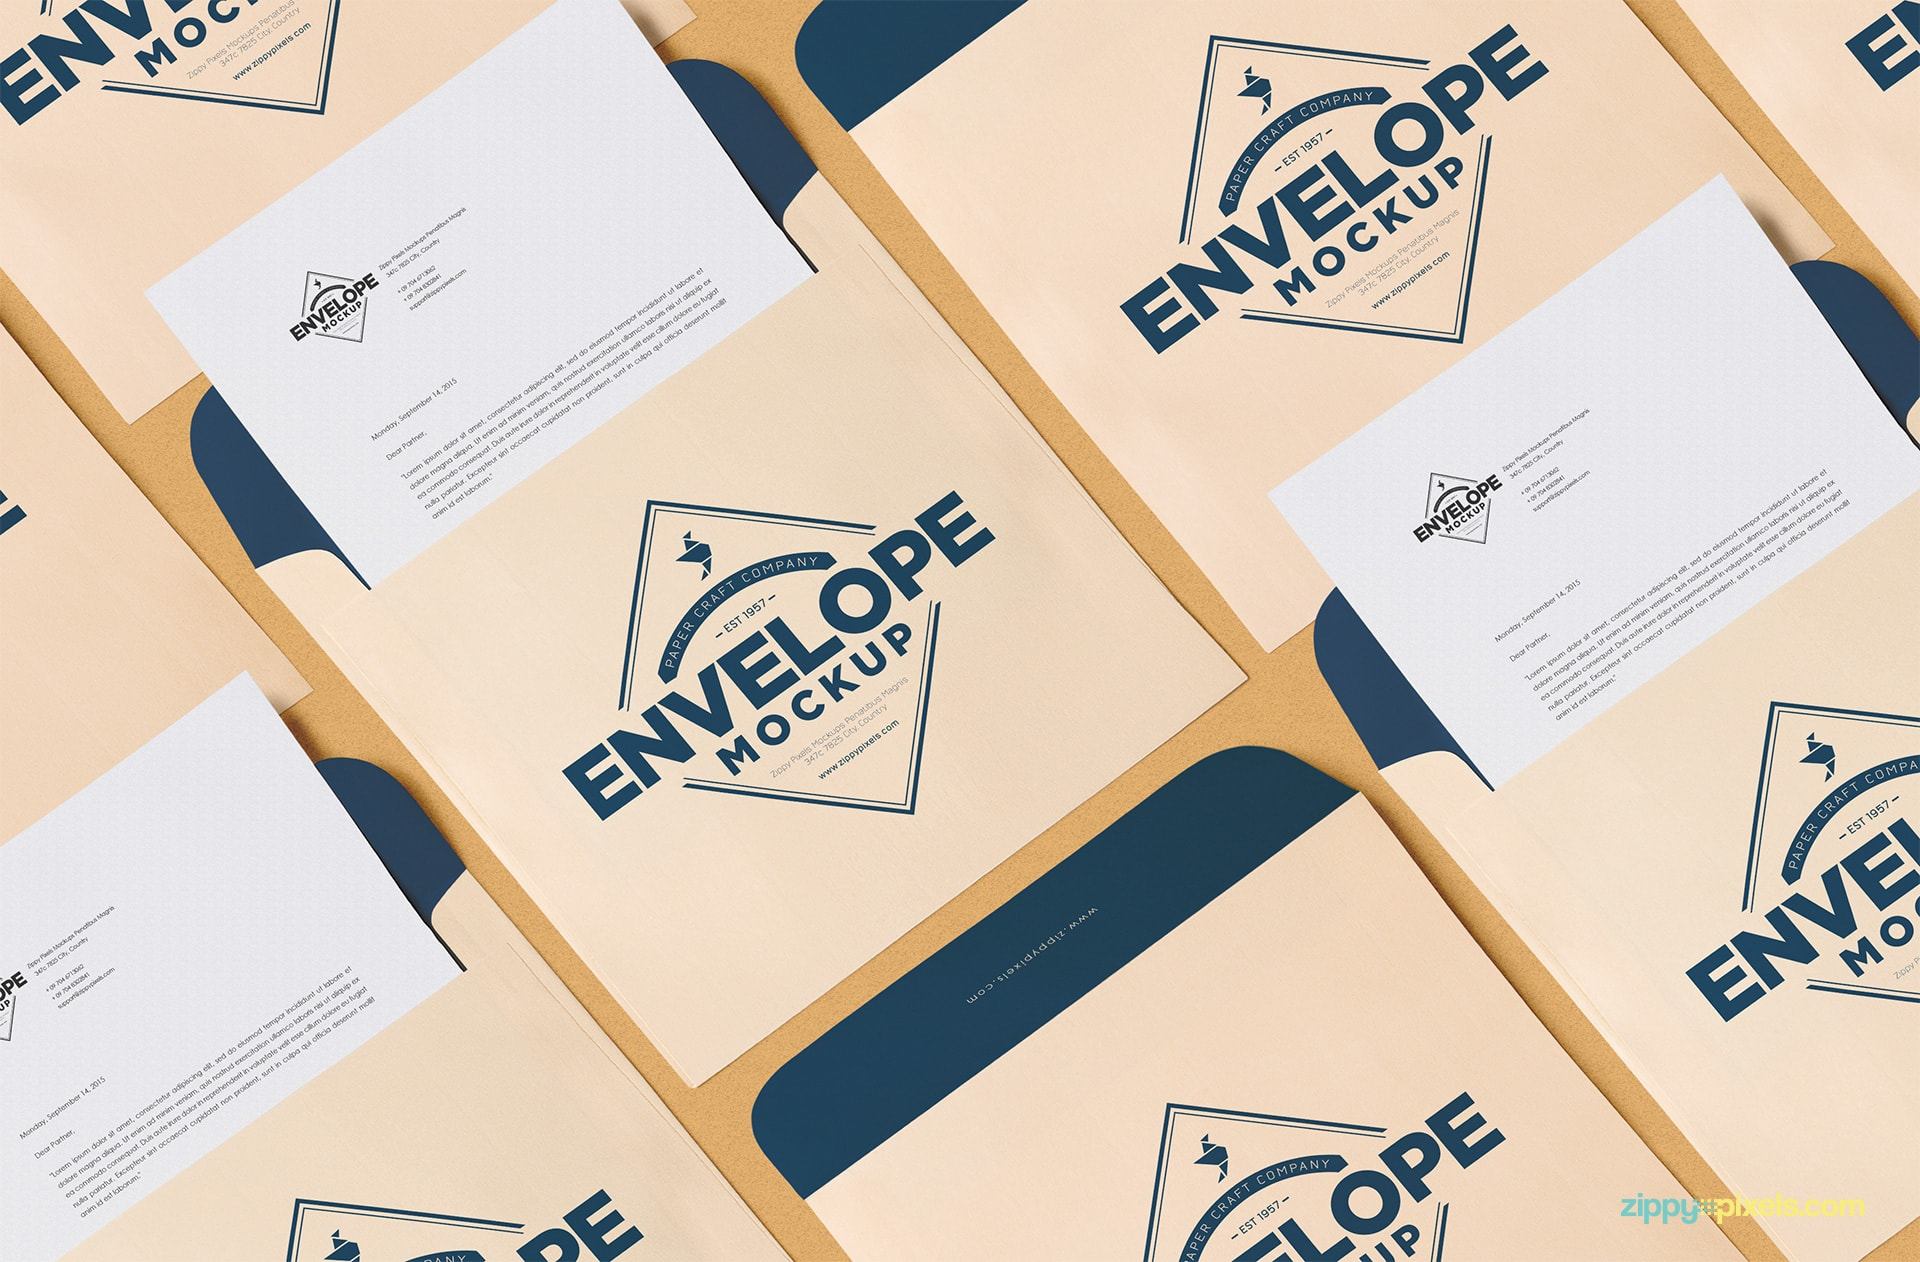 A beautifully arranged composition of the free envelope PSD mockup